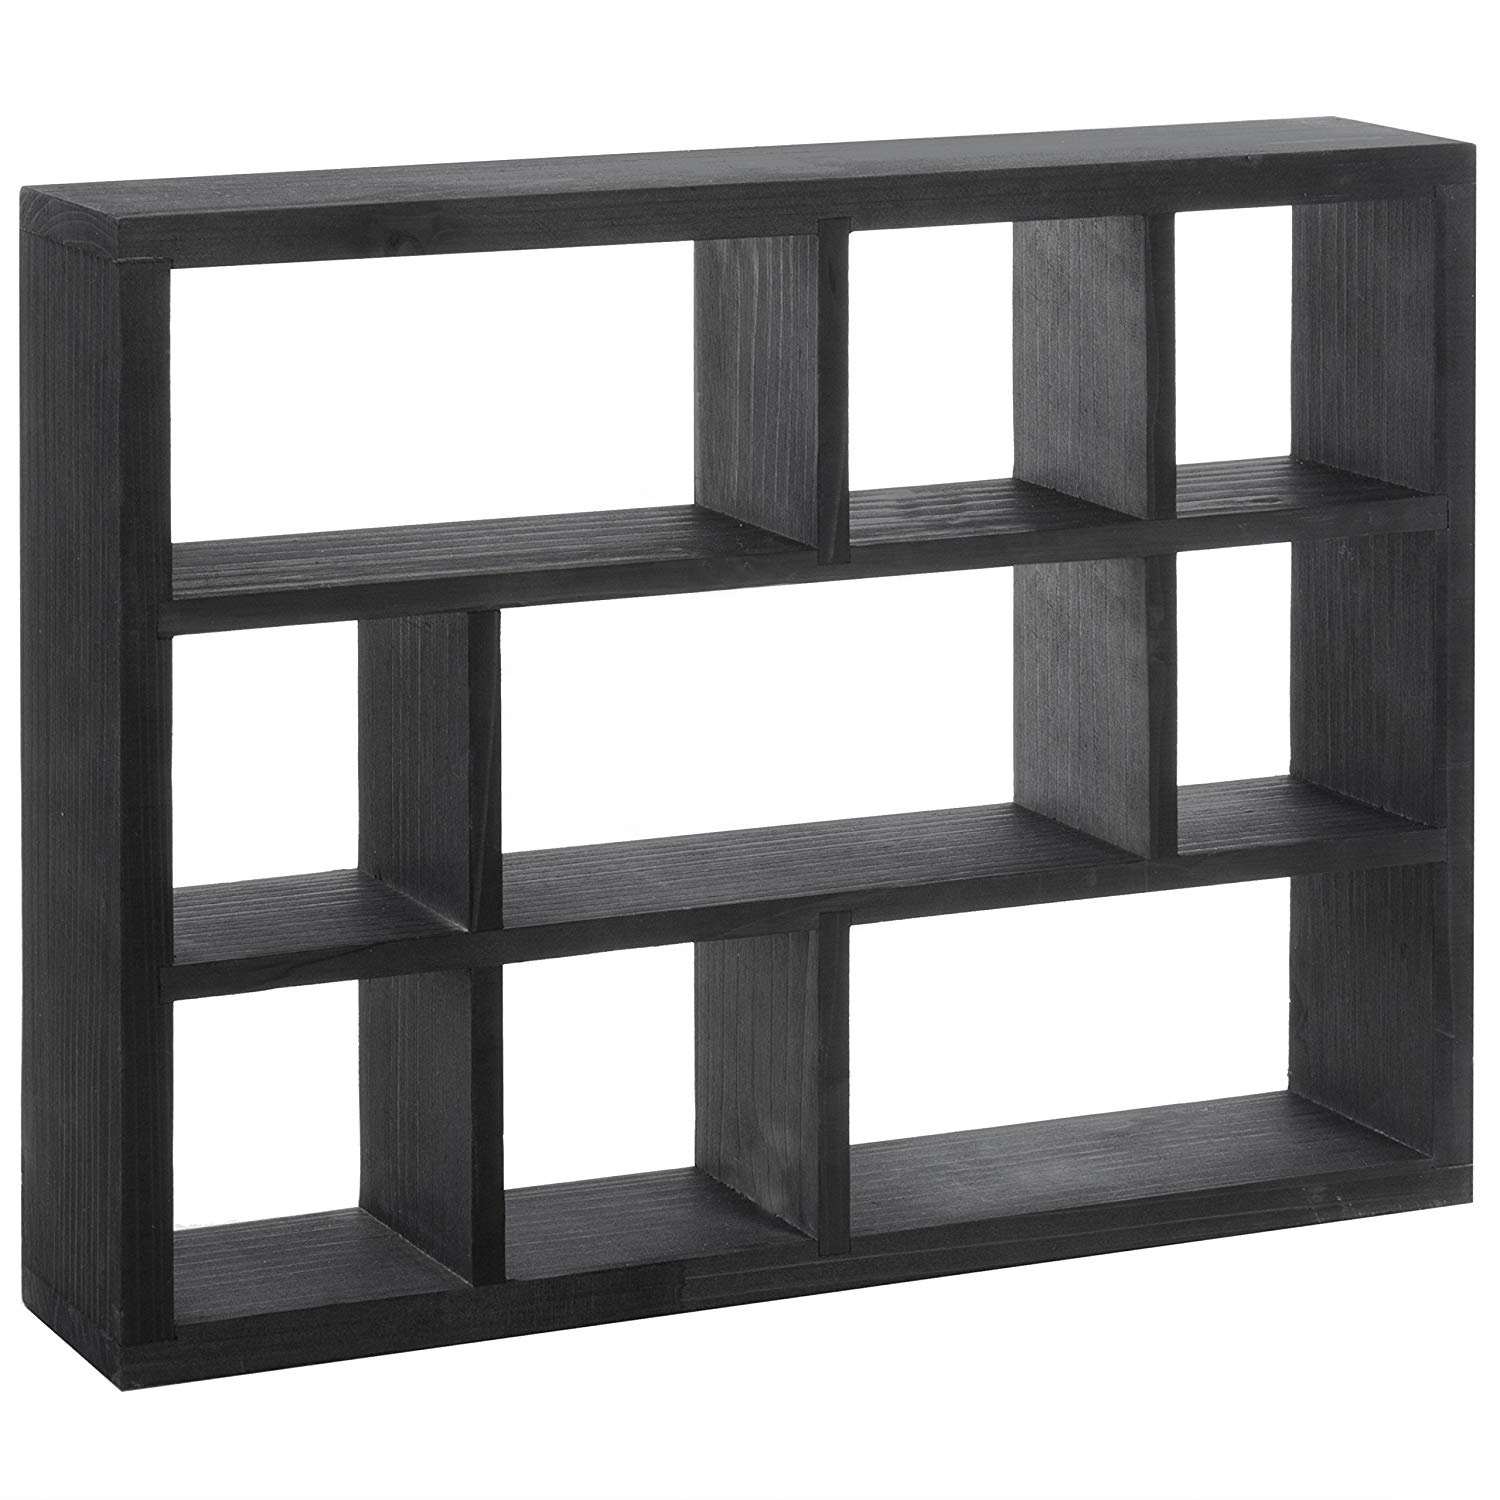 Rectangular Wooden Wall Shelf Home Decor Wall Display